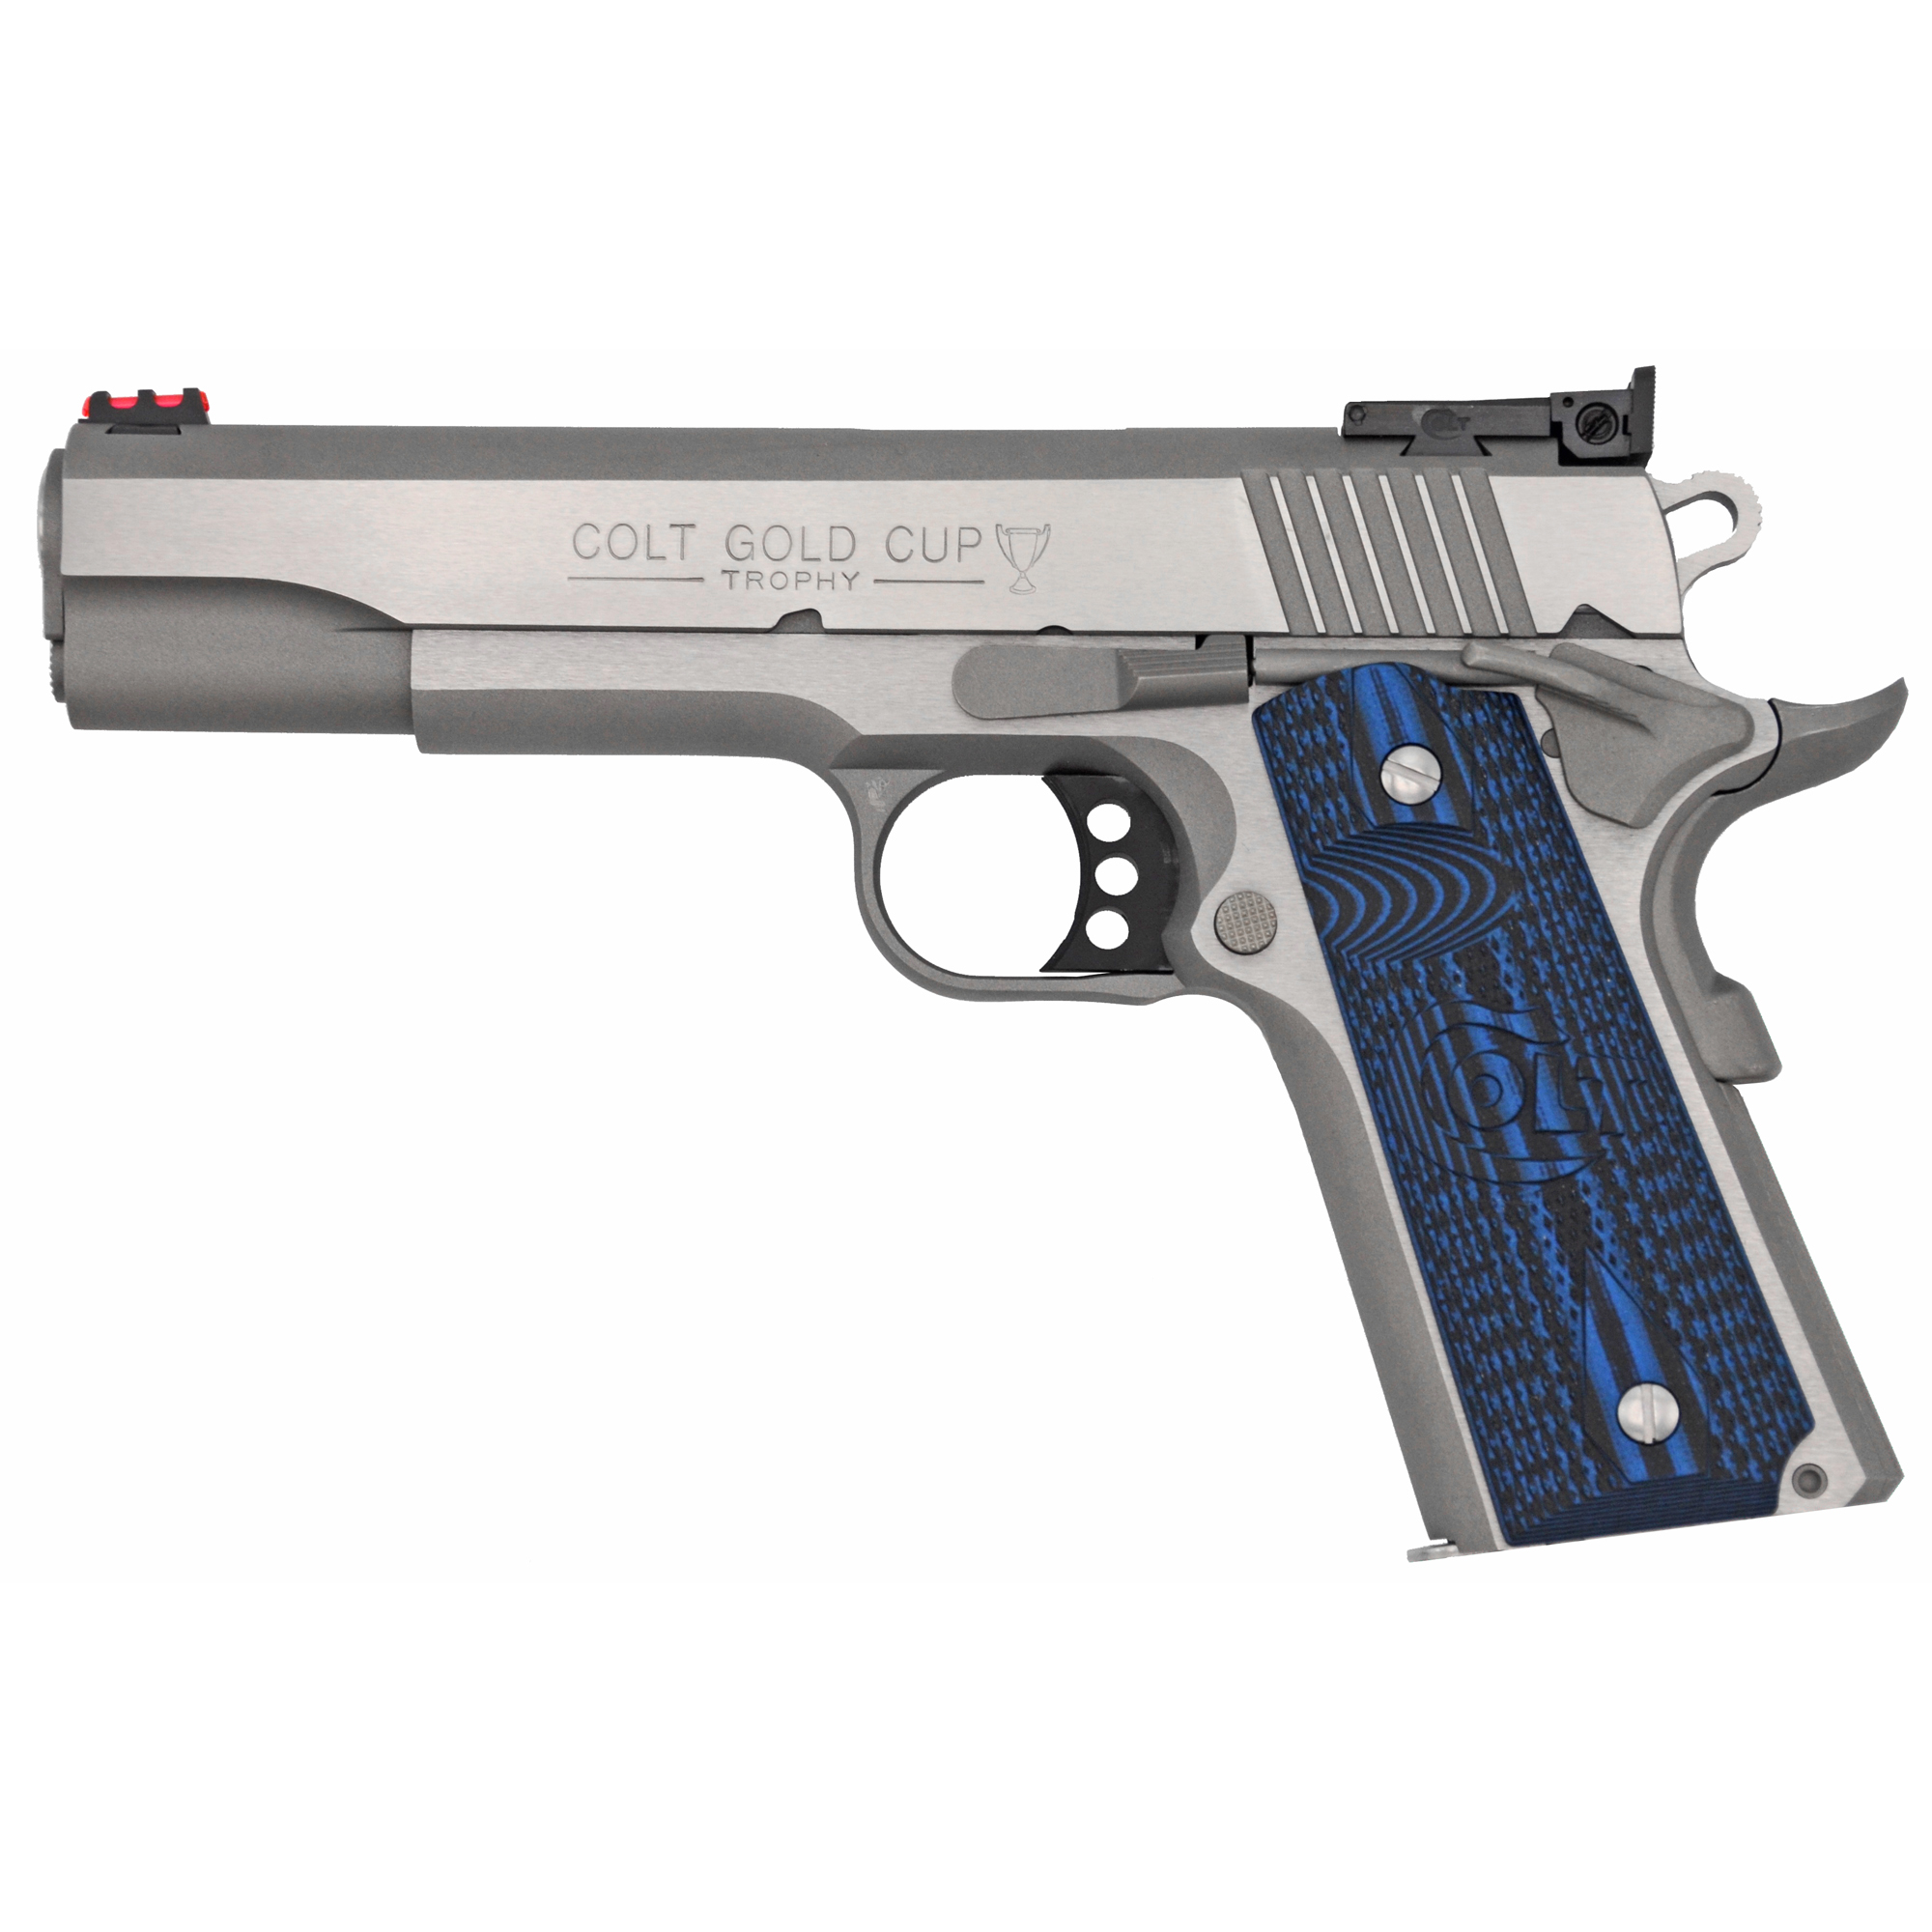 """The Colt M1911 pistol has been a favorite for 100 years as a service pistol"""" law enforcement pistol"""" and personal defense firearm. This pistol features G10 grips"""" an upswept beavertail grip safety and adjustable sights with fiber optic front."""